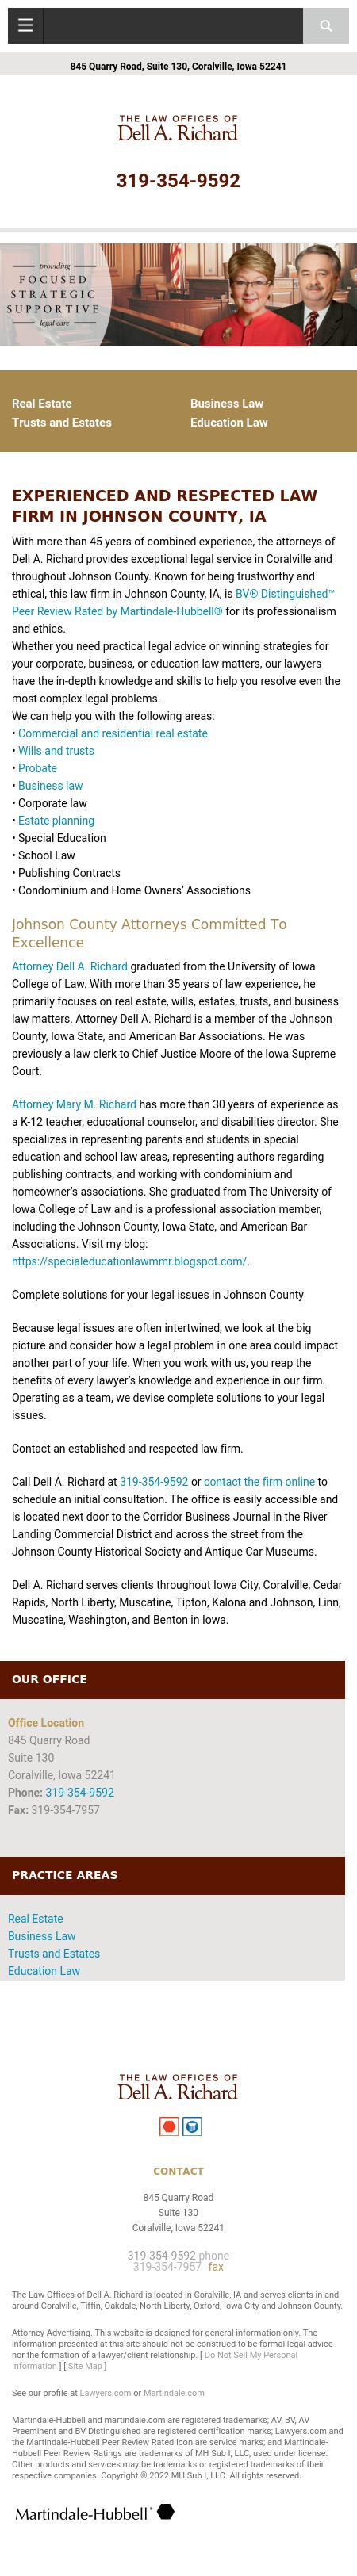 Dell A Richard - Coralville IA Lawyers